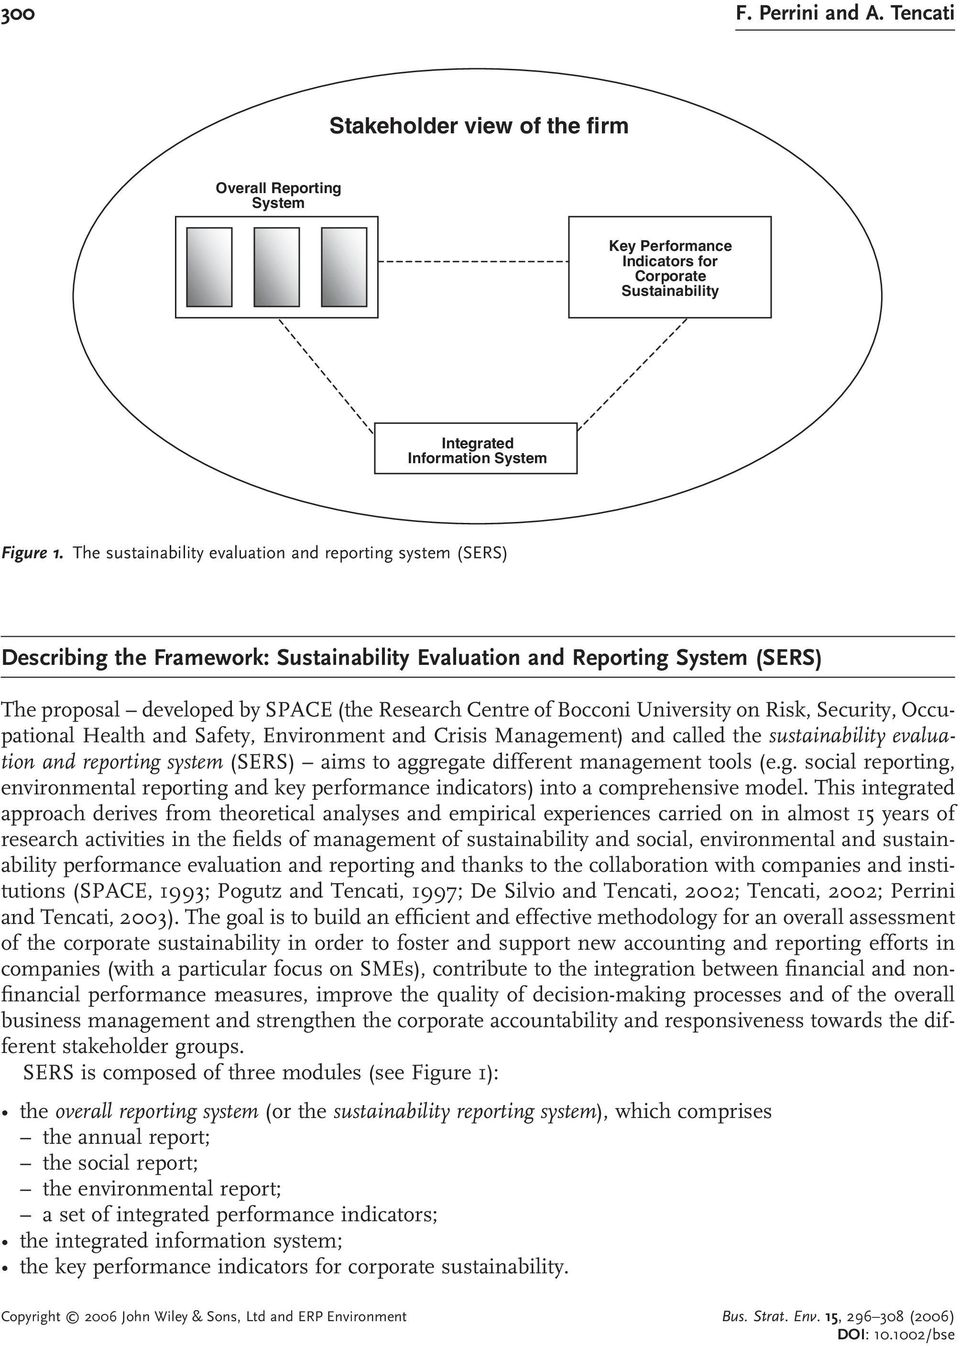 Bocconi University on Risk, Security, Occupational Health and Safety, Environment and Crisis Management) and called the sustainability evaluation and reporting system (SERS) aims to aggregate